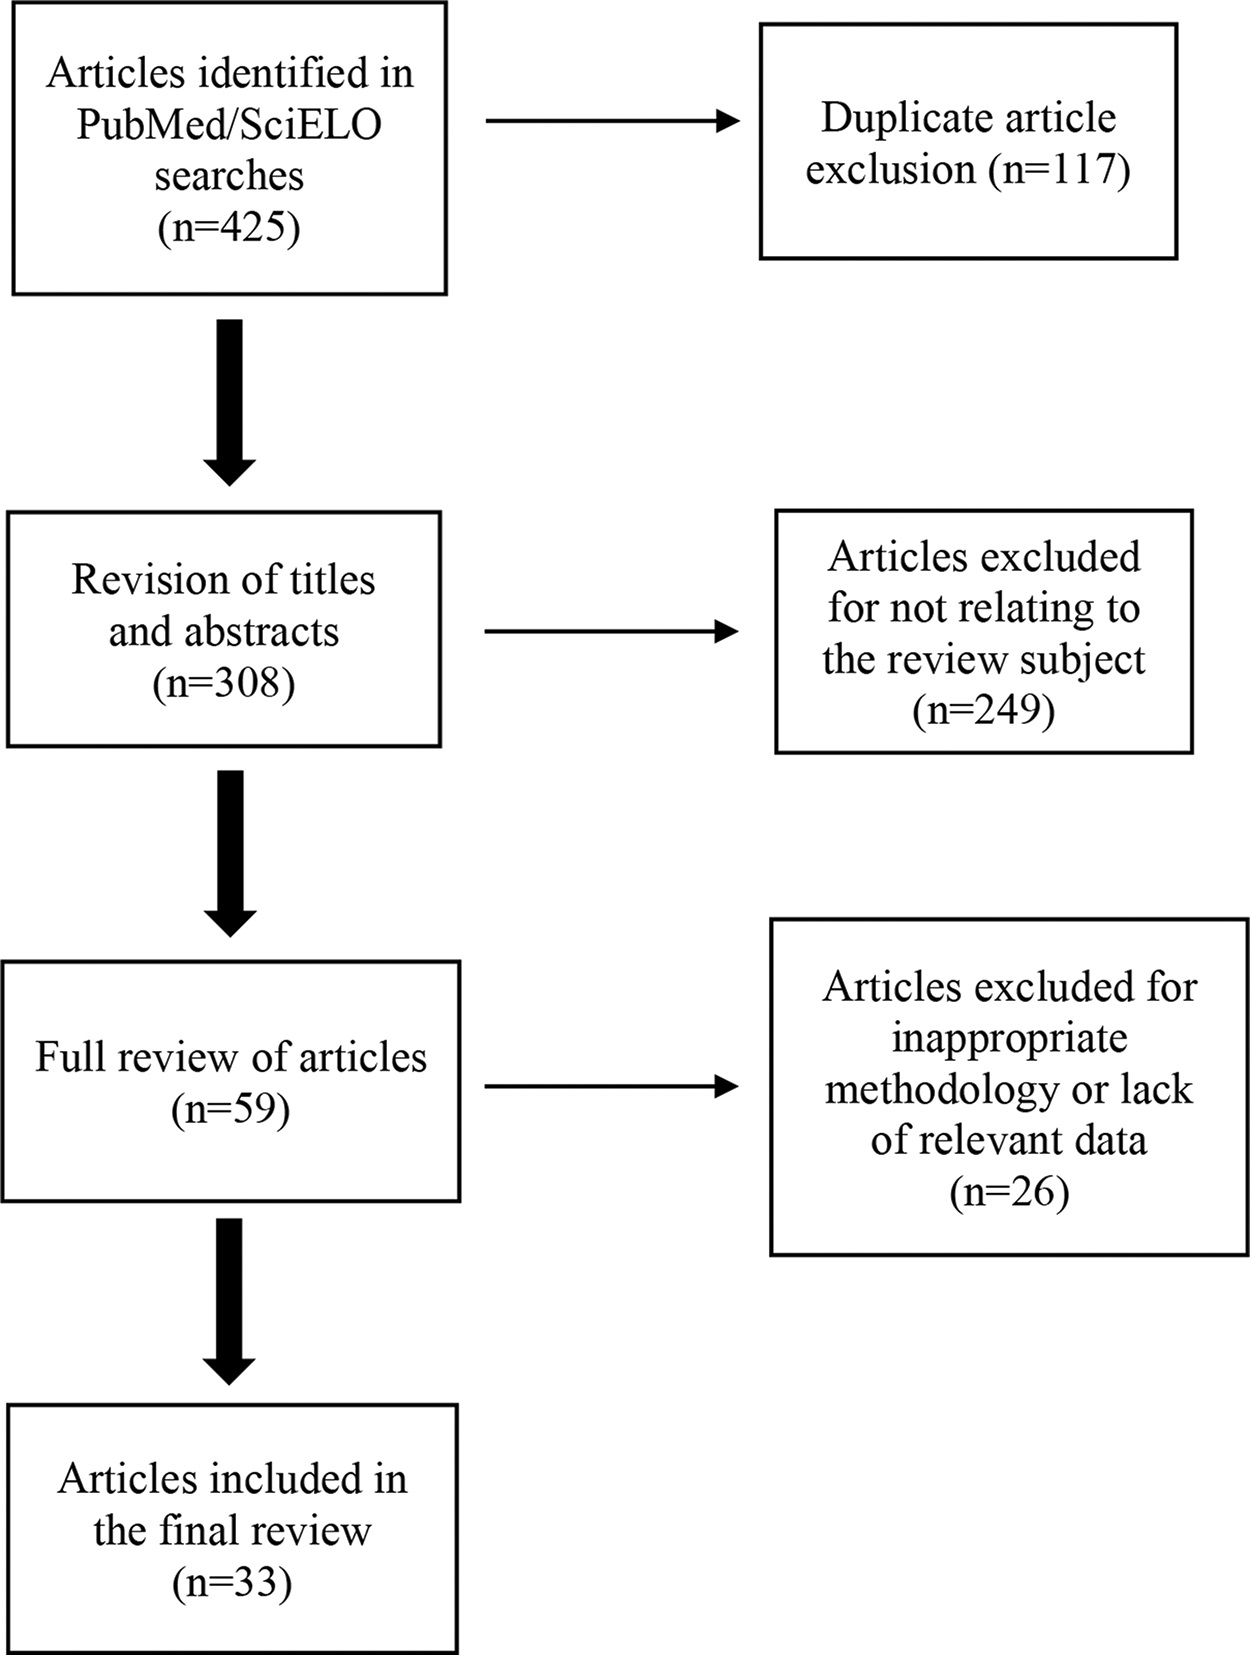 Flowchart of the selection of articles included in the literature review.